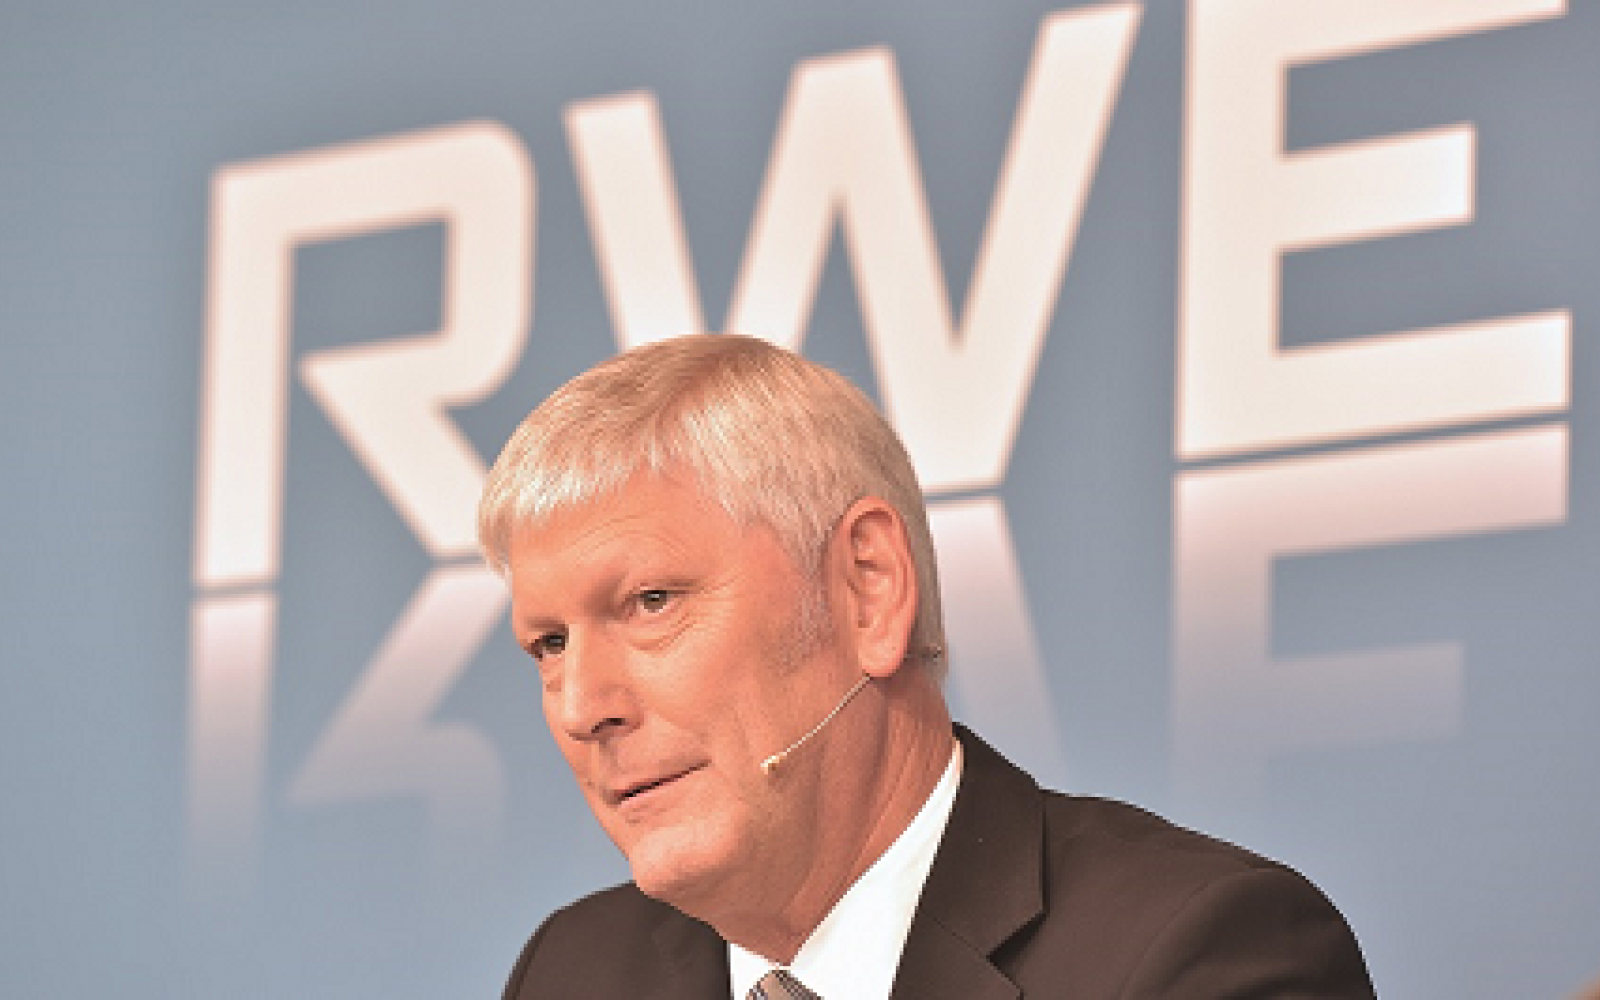 Image: Rolf Martin Schmitz, chief executive at RWE.